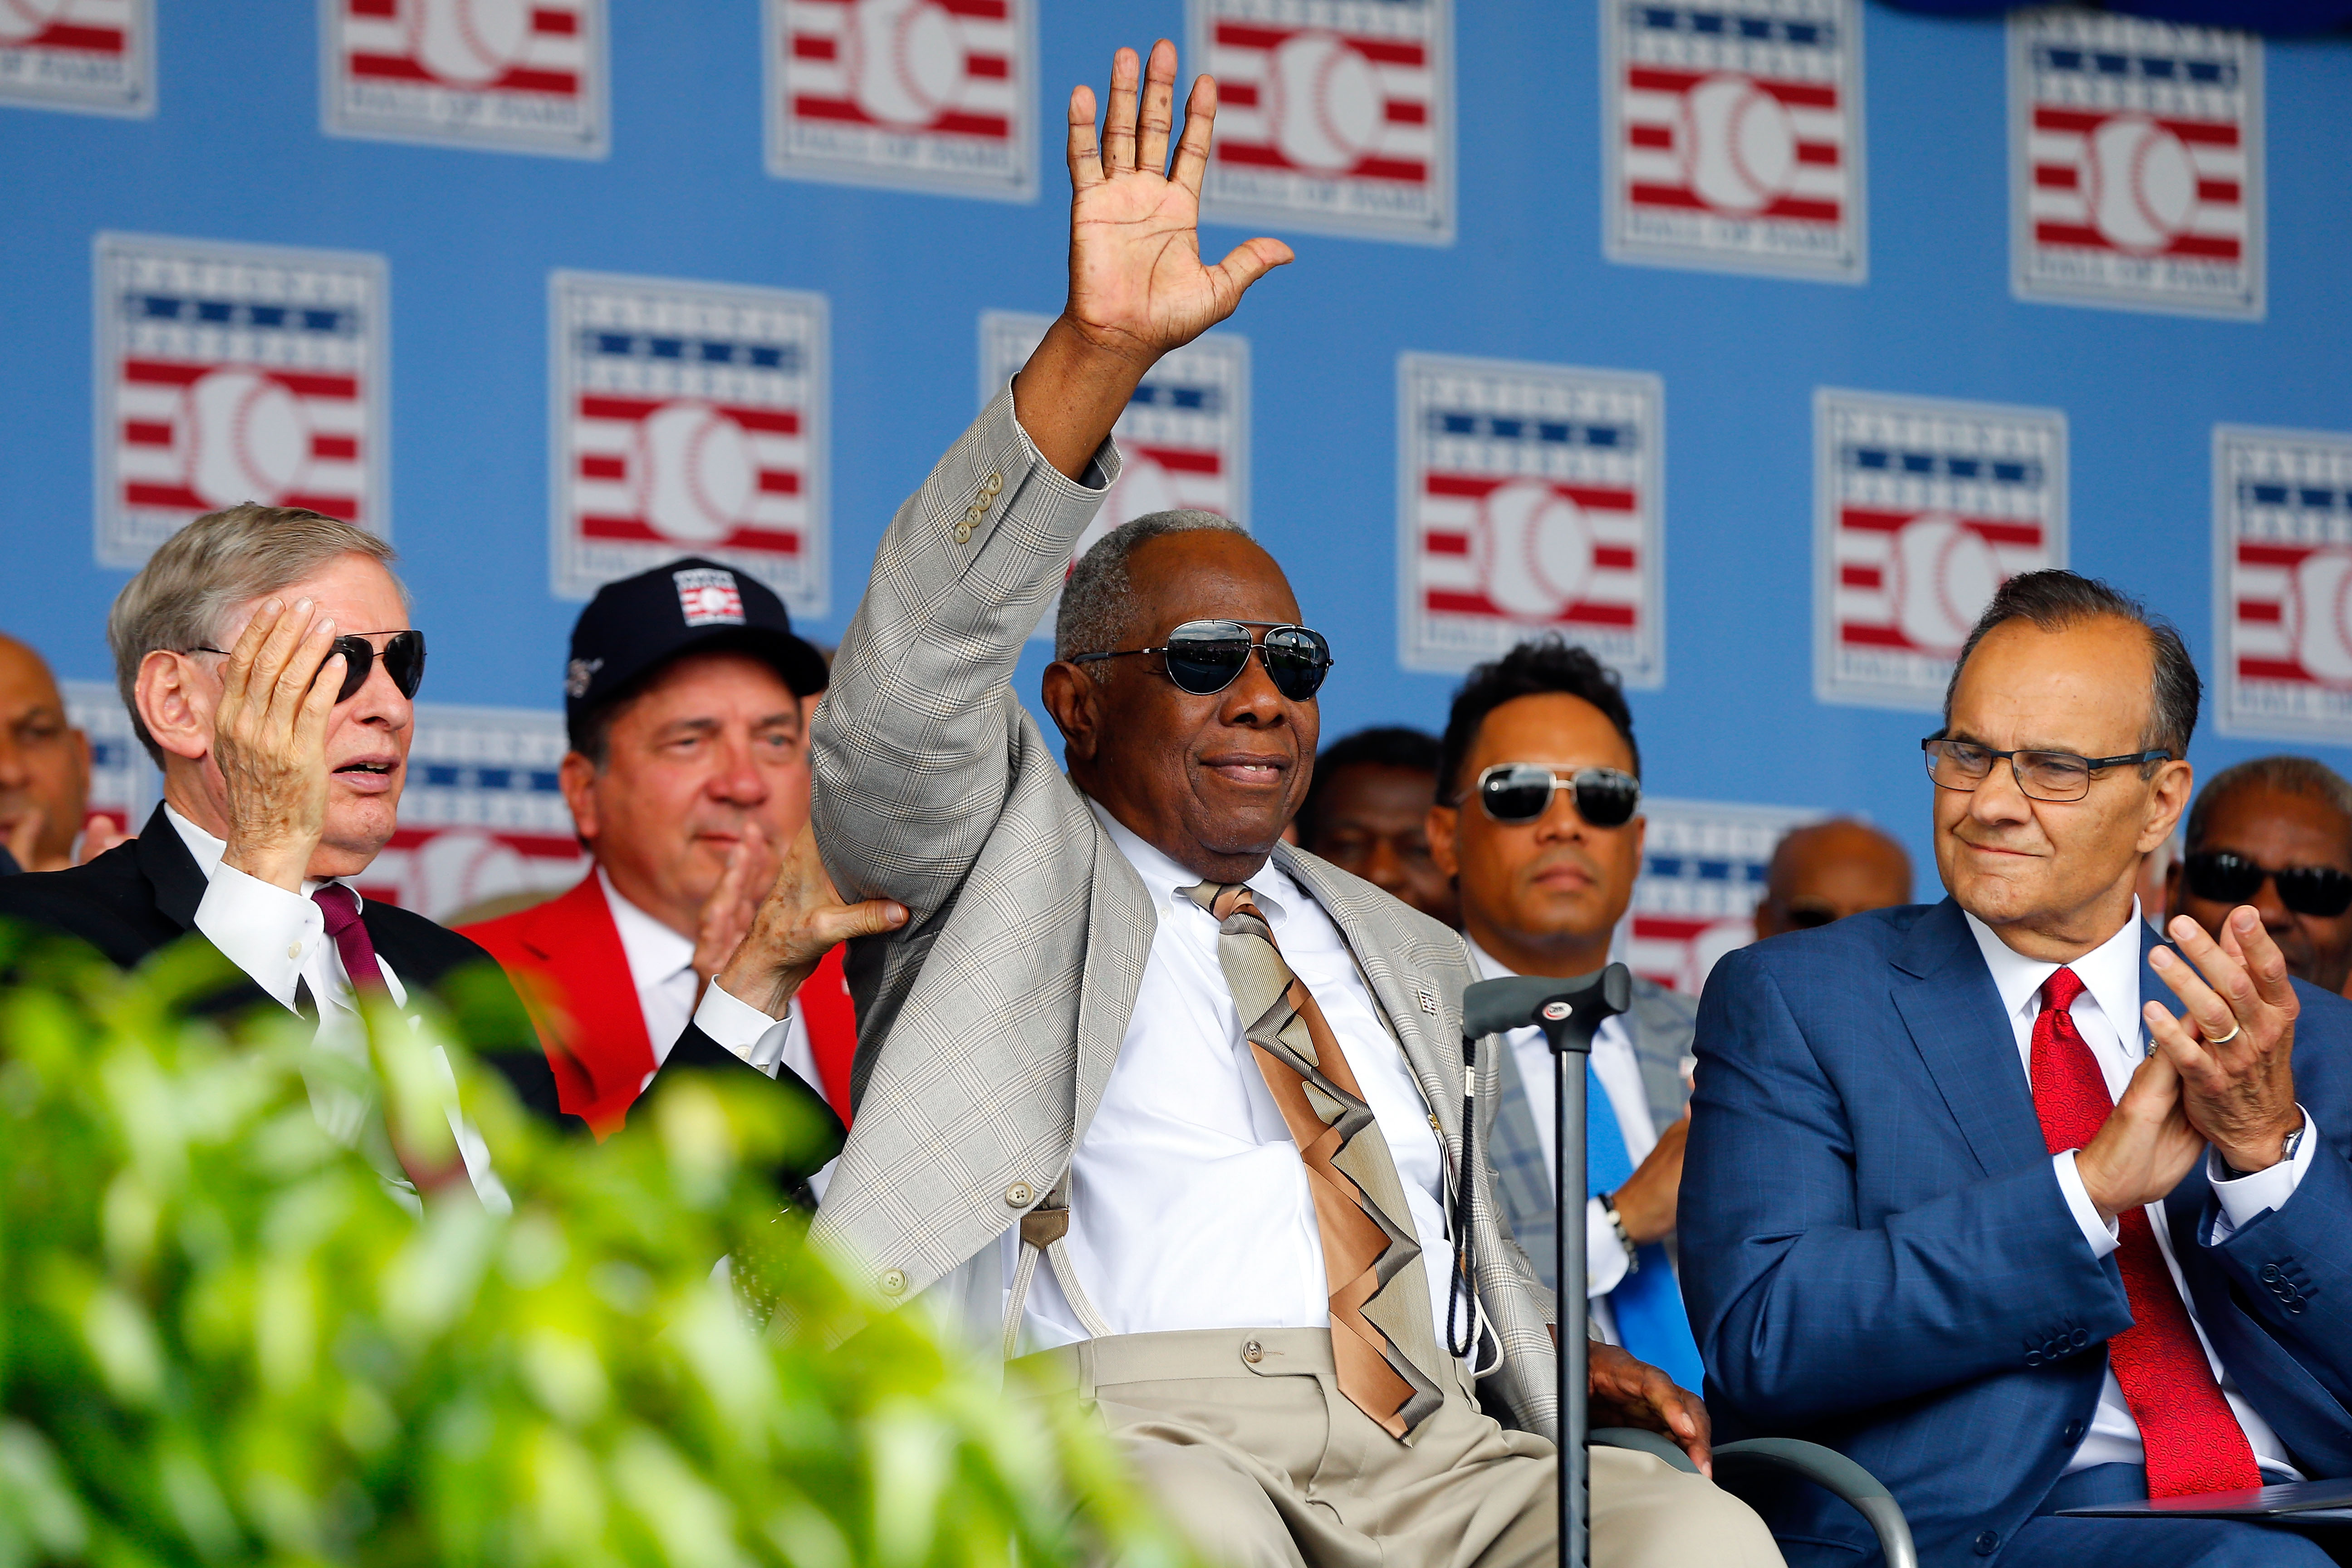 Trading All-Time Home Run King Hank Aaron 'Wasn't That Big of a Deal'